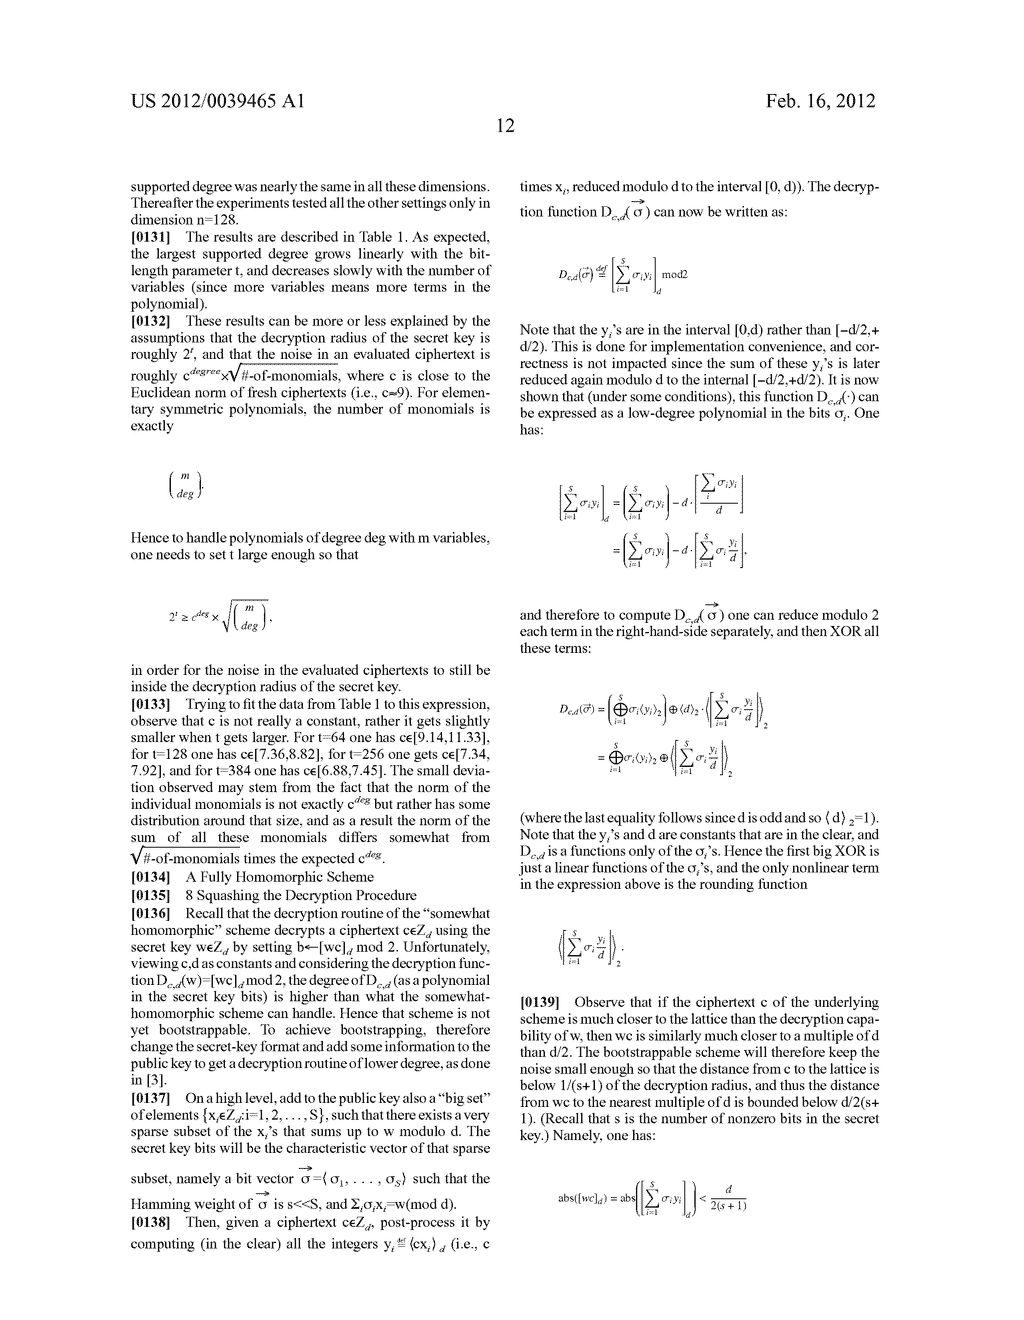 Fast Computation Of A Single Coefficient In An Inverse Polynomial - diagram, schematic, and image 21